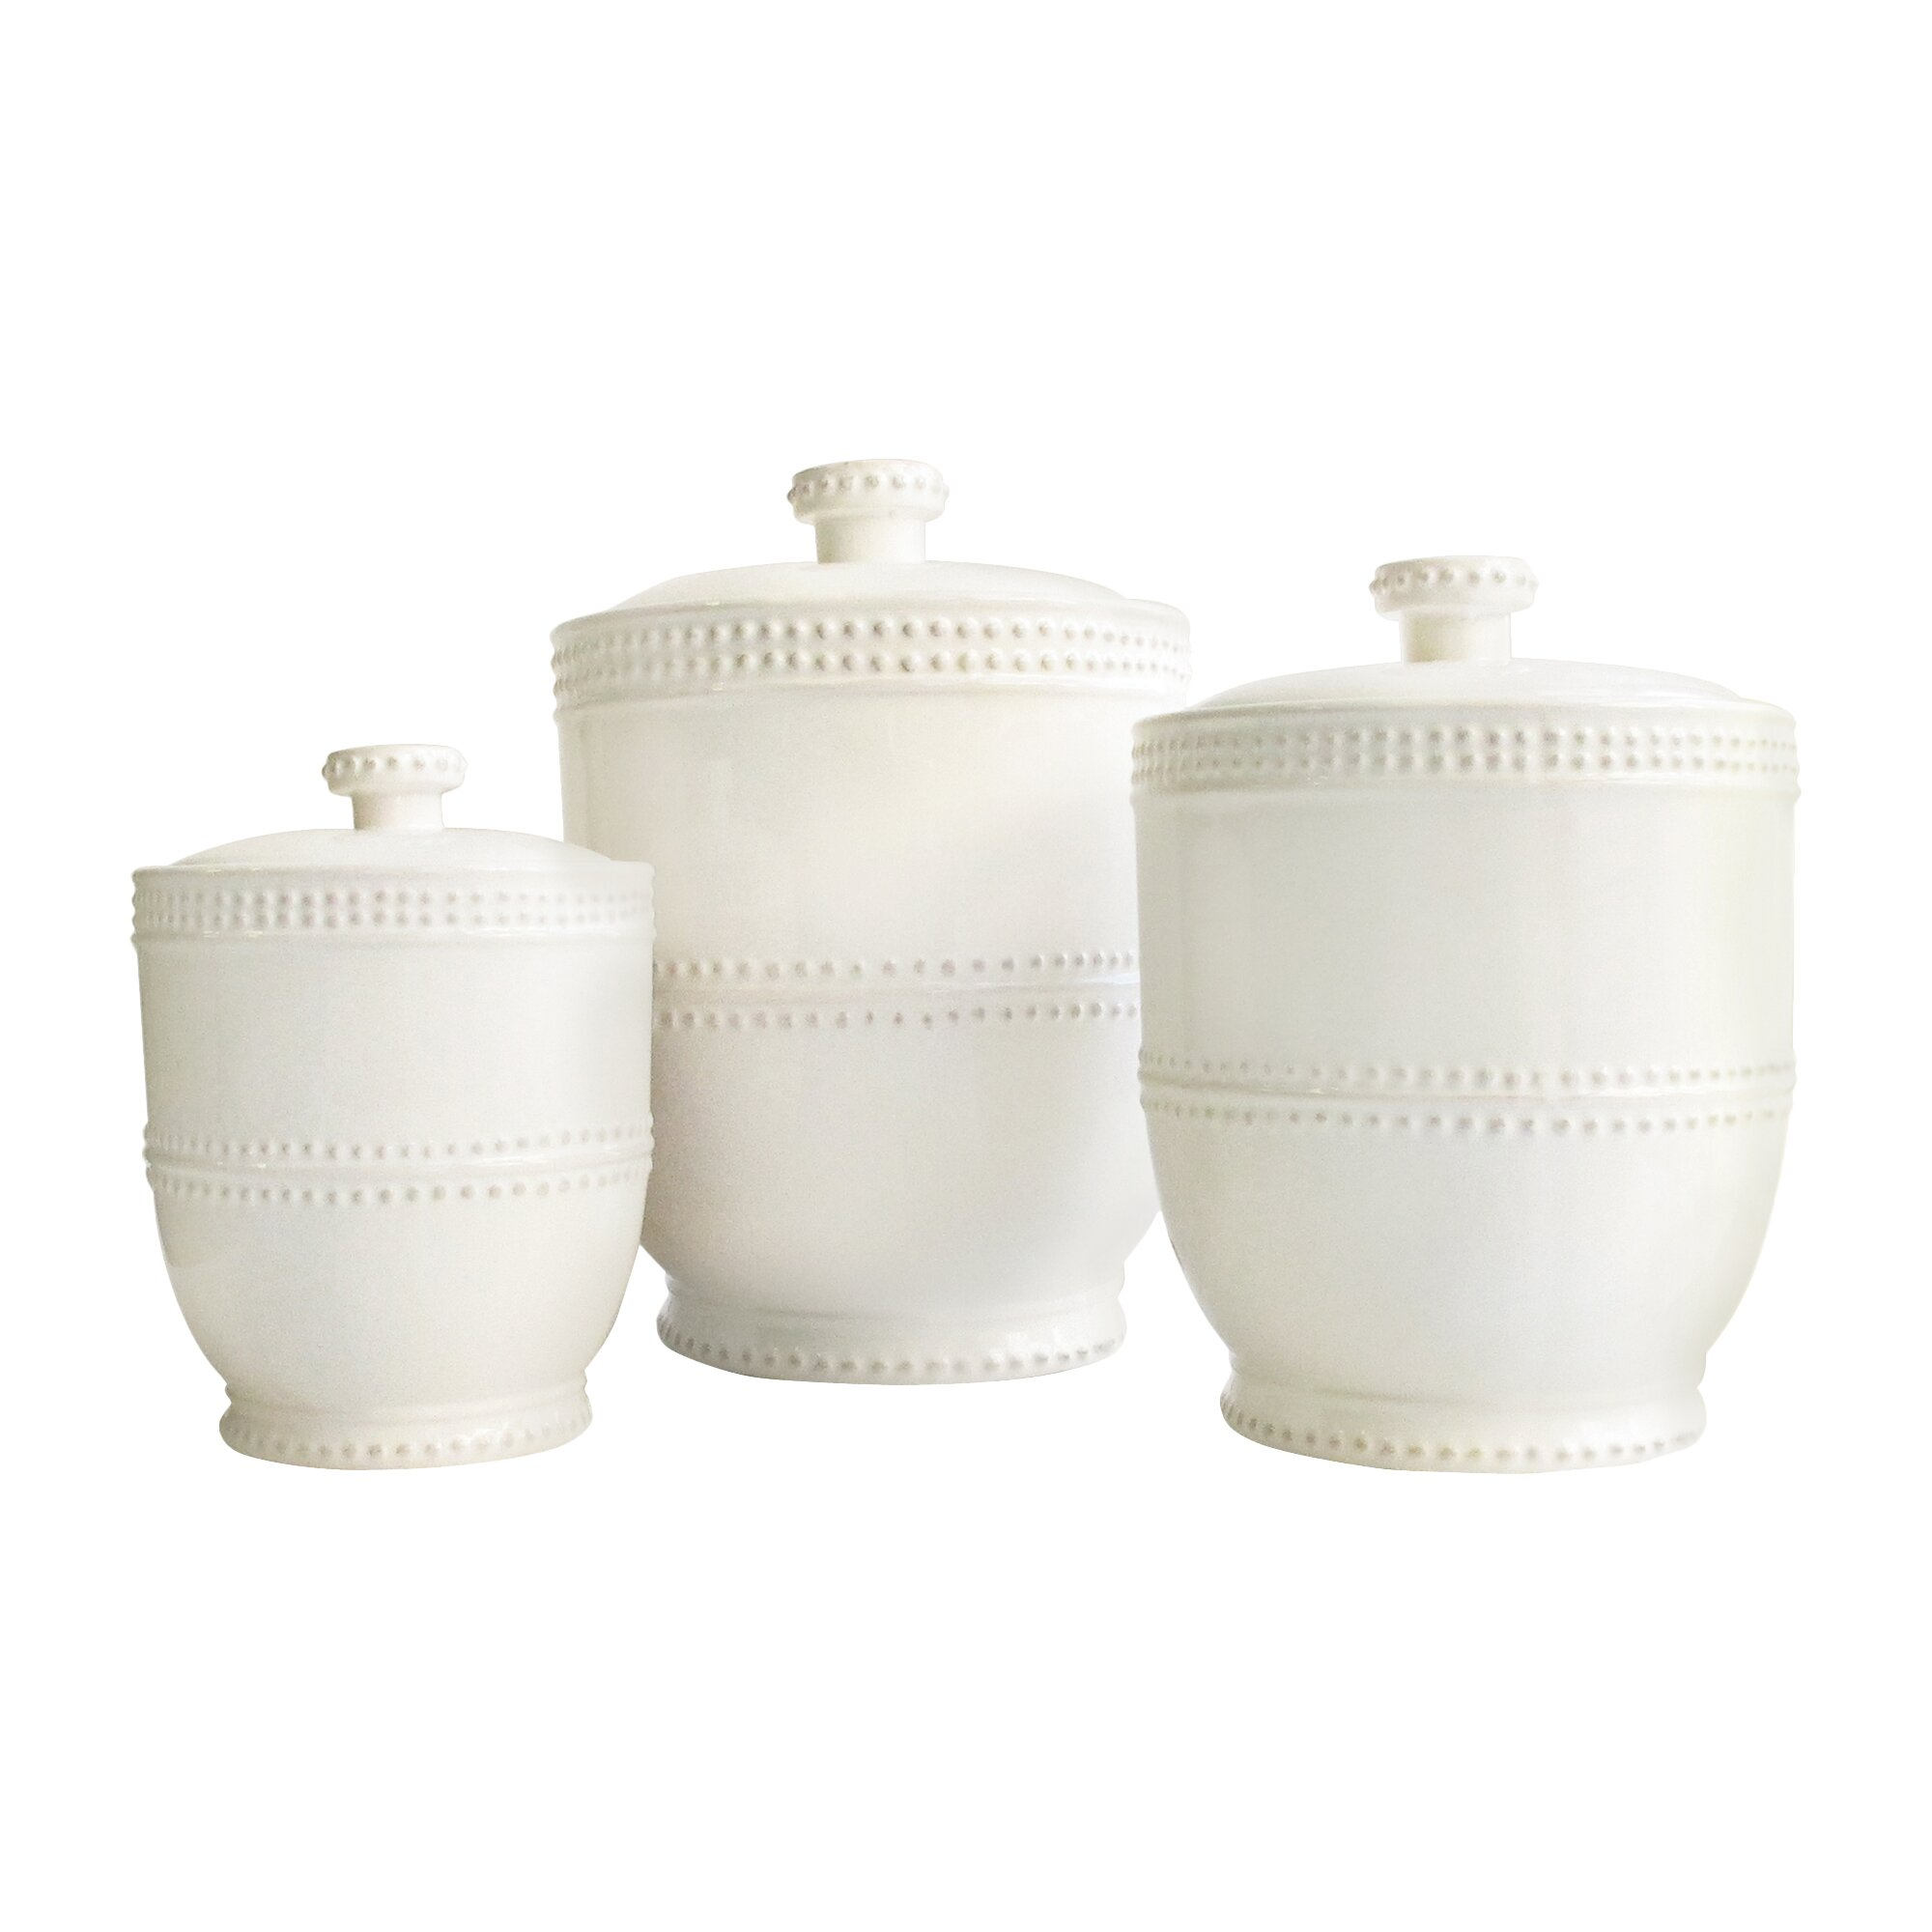 Designer Kitchen Canister Sets White Kitchen Canisters Jars Youll Love Wayfair